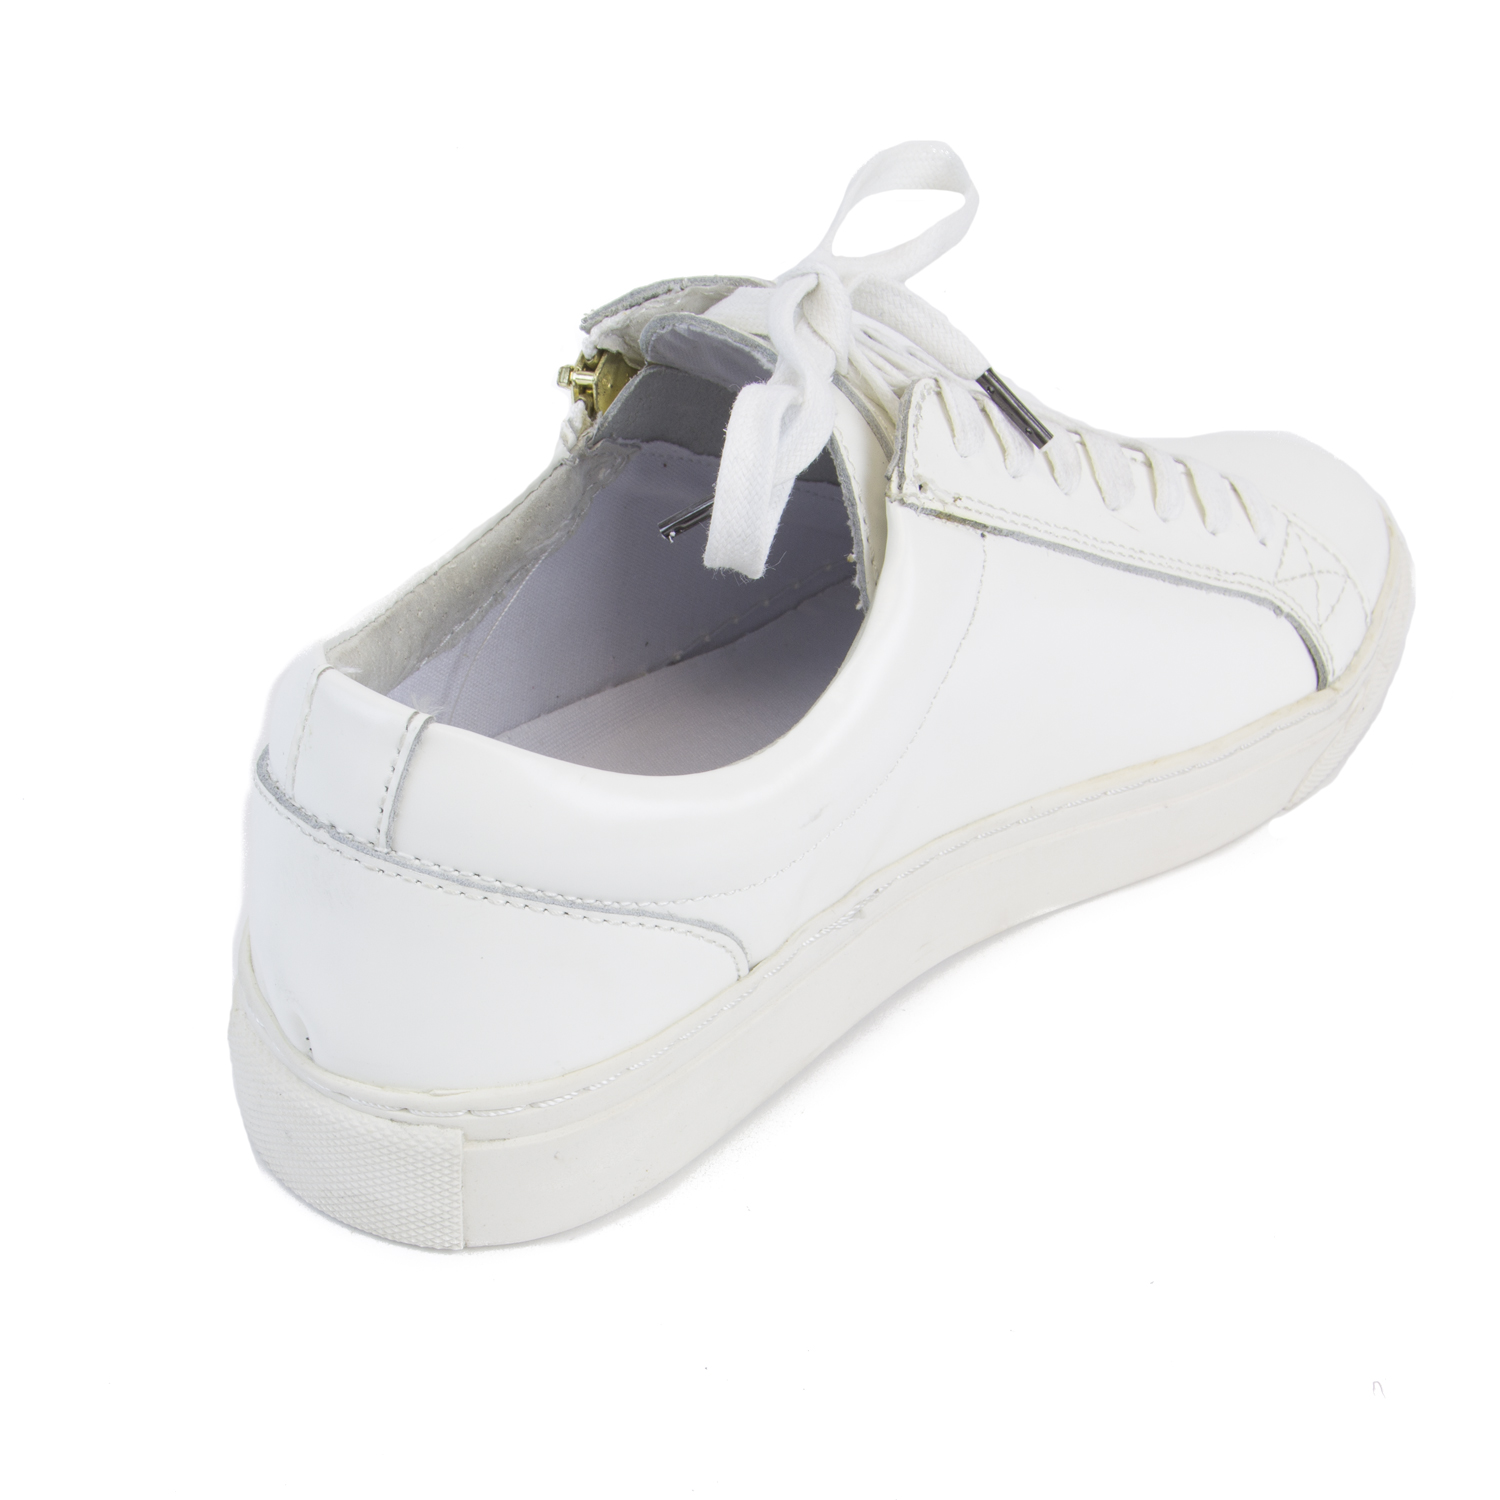 Nib Uk Religion Details Sneakers White Hi About 6us Zip Detail Shine Men's 7160 Iron QrdhtsC